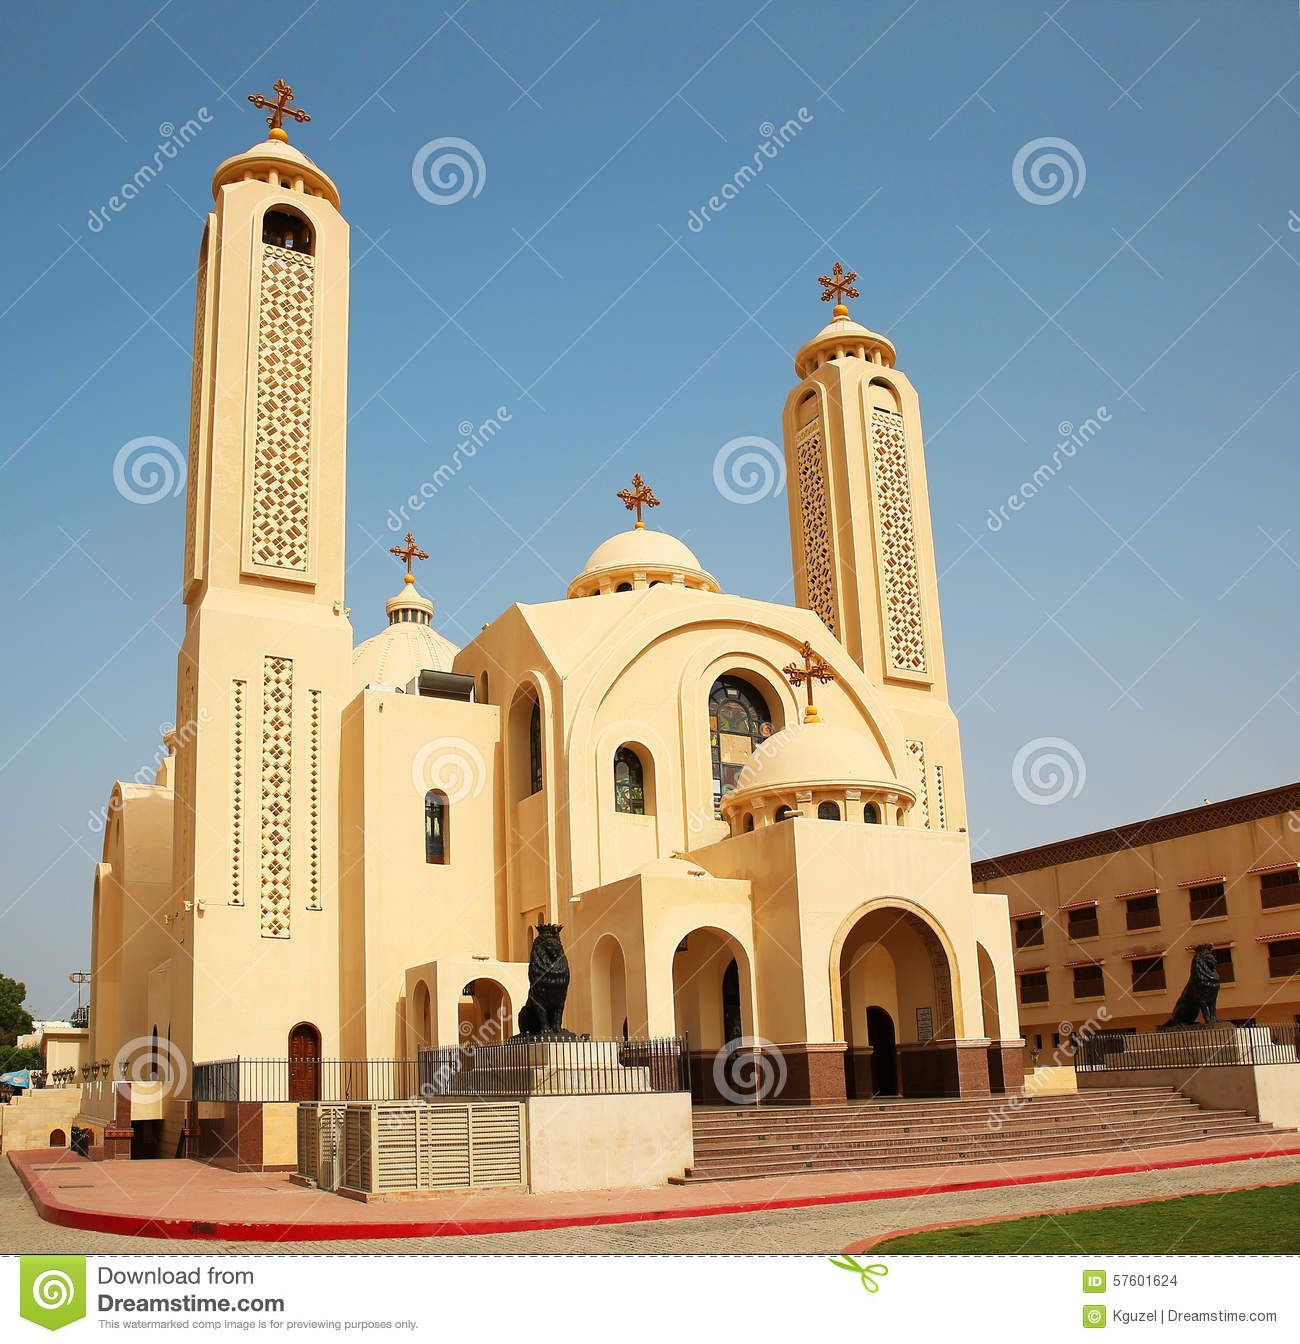 Church, Egypt and Jesus on Pinterest